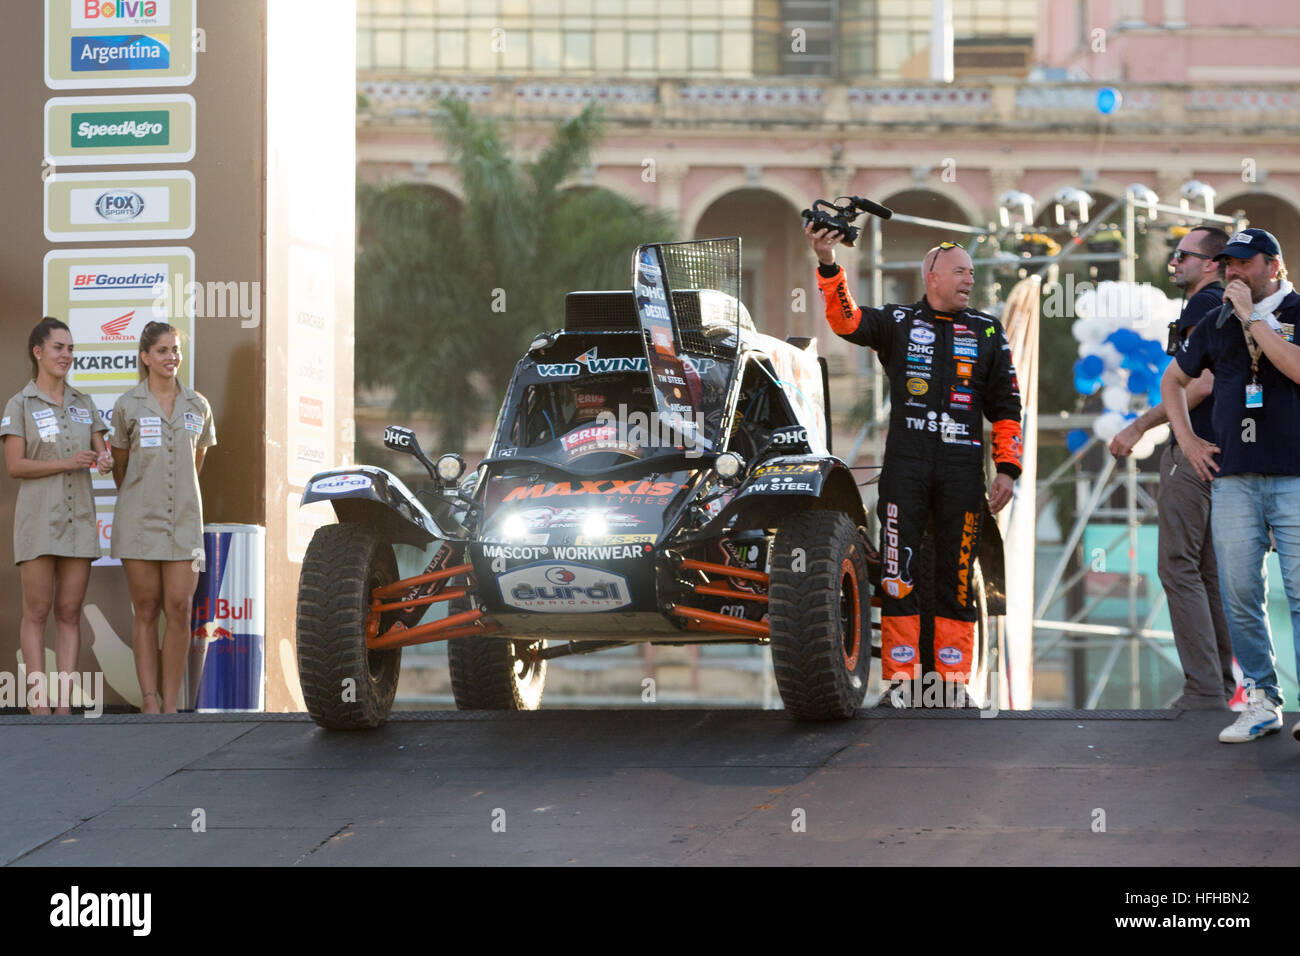 Asuncion, Paraguay. 1st January, 2017. #354 - Maxxis Dakar Team Powered By Super B, driver Tom Coronel with his - Stock Image